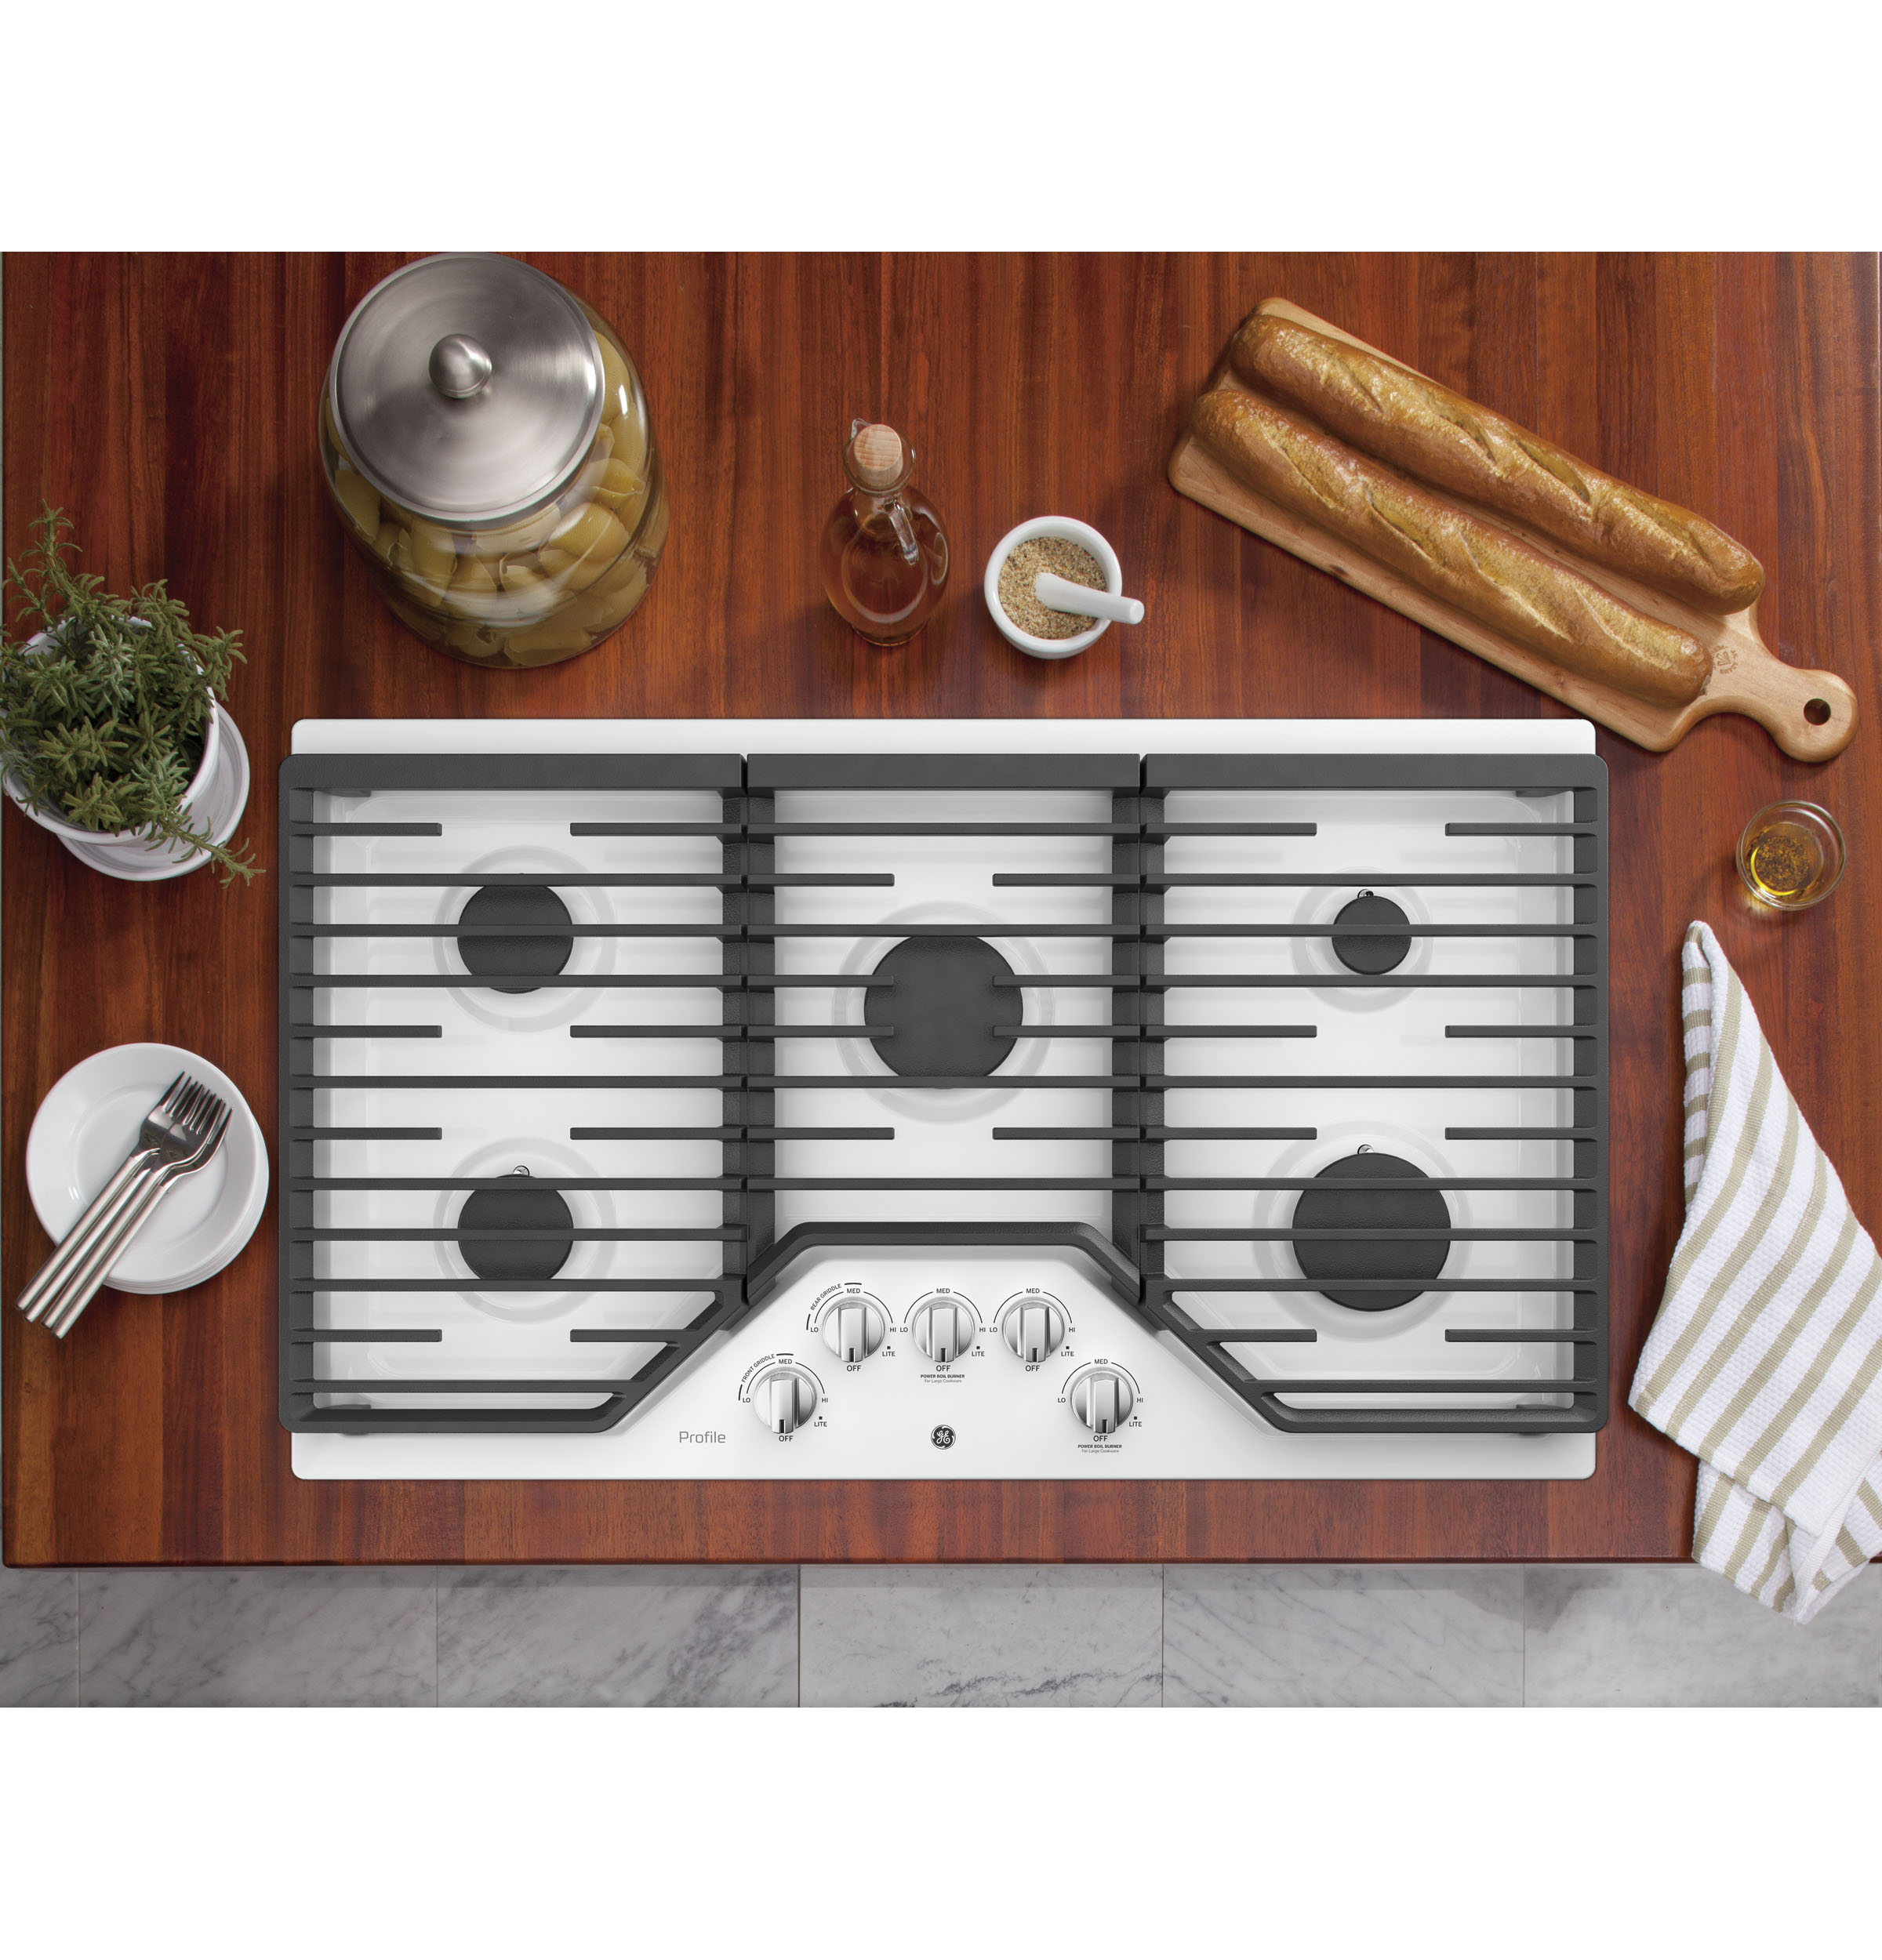 "Model: PGP7036DLWW | GE Profile GE Profile™ Series 36"" Built-In Gas Cooktop"